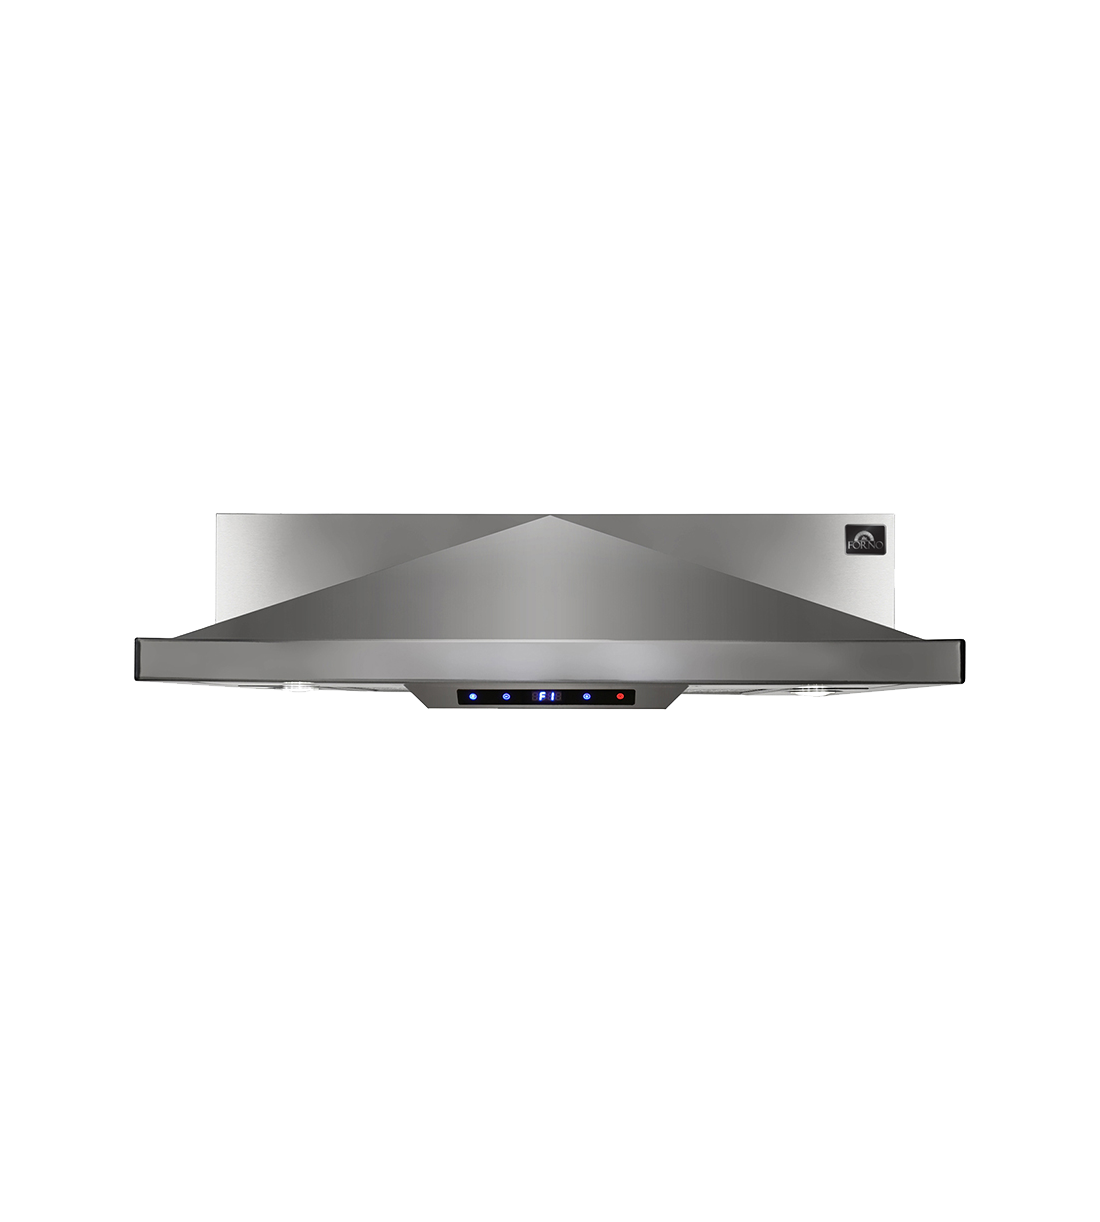 Forno Range Hood 30 Stainless in Stainless Steel color showcased by Corbeil Electro Store